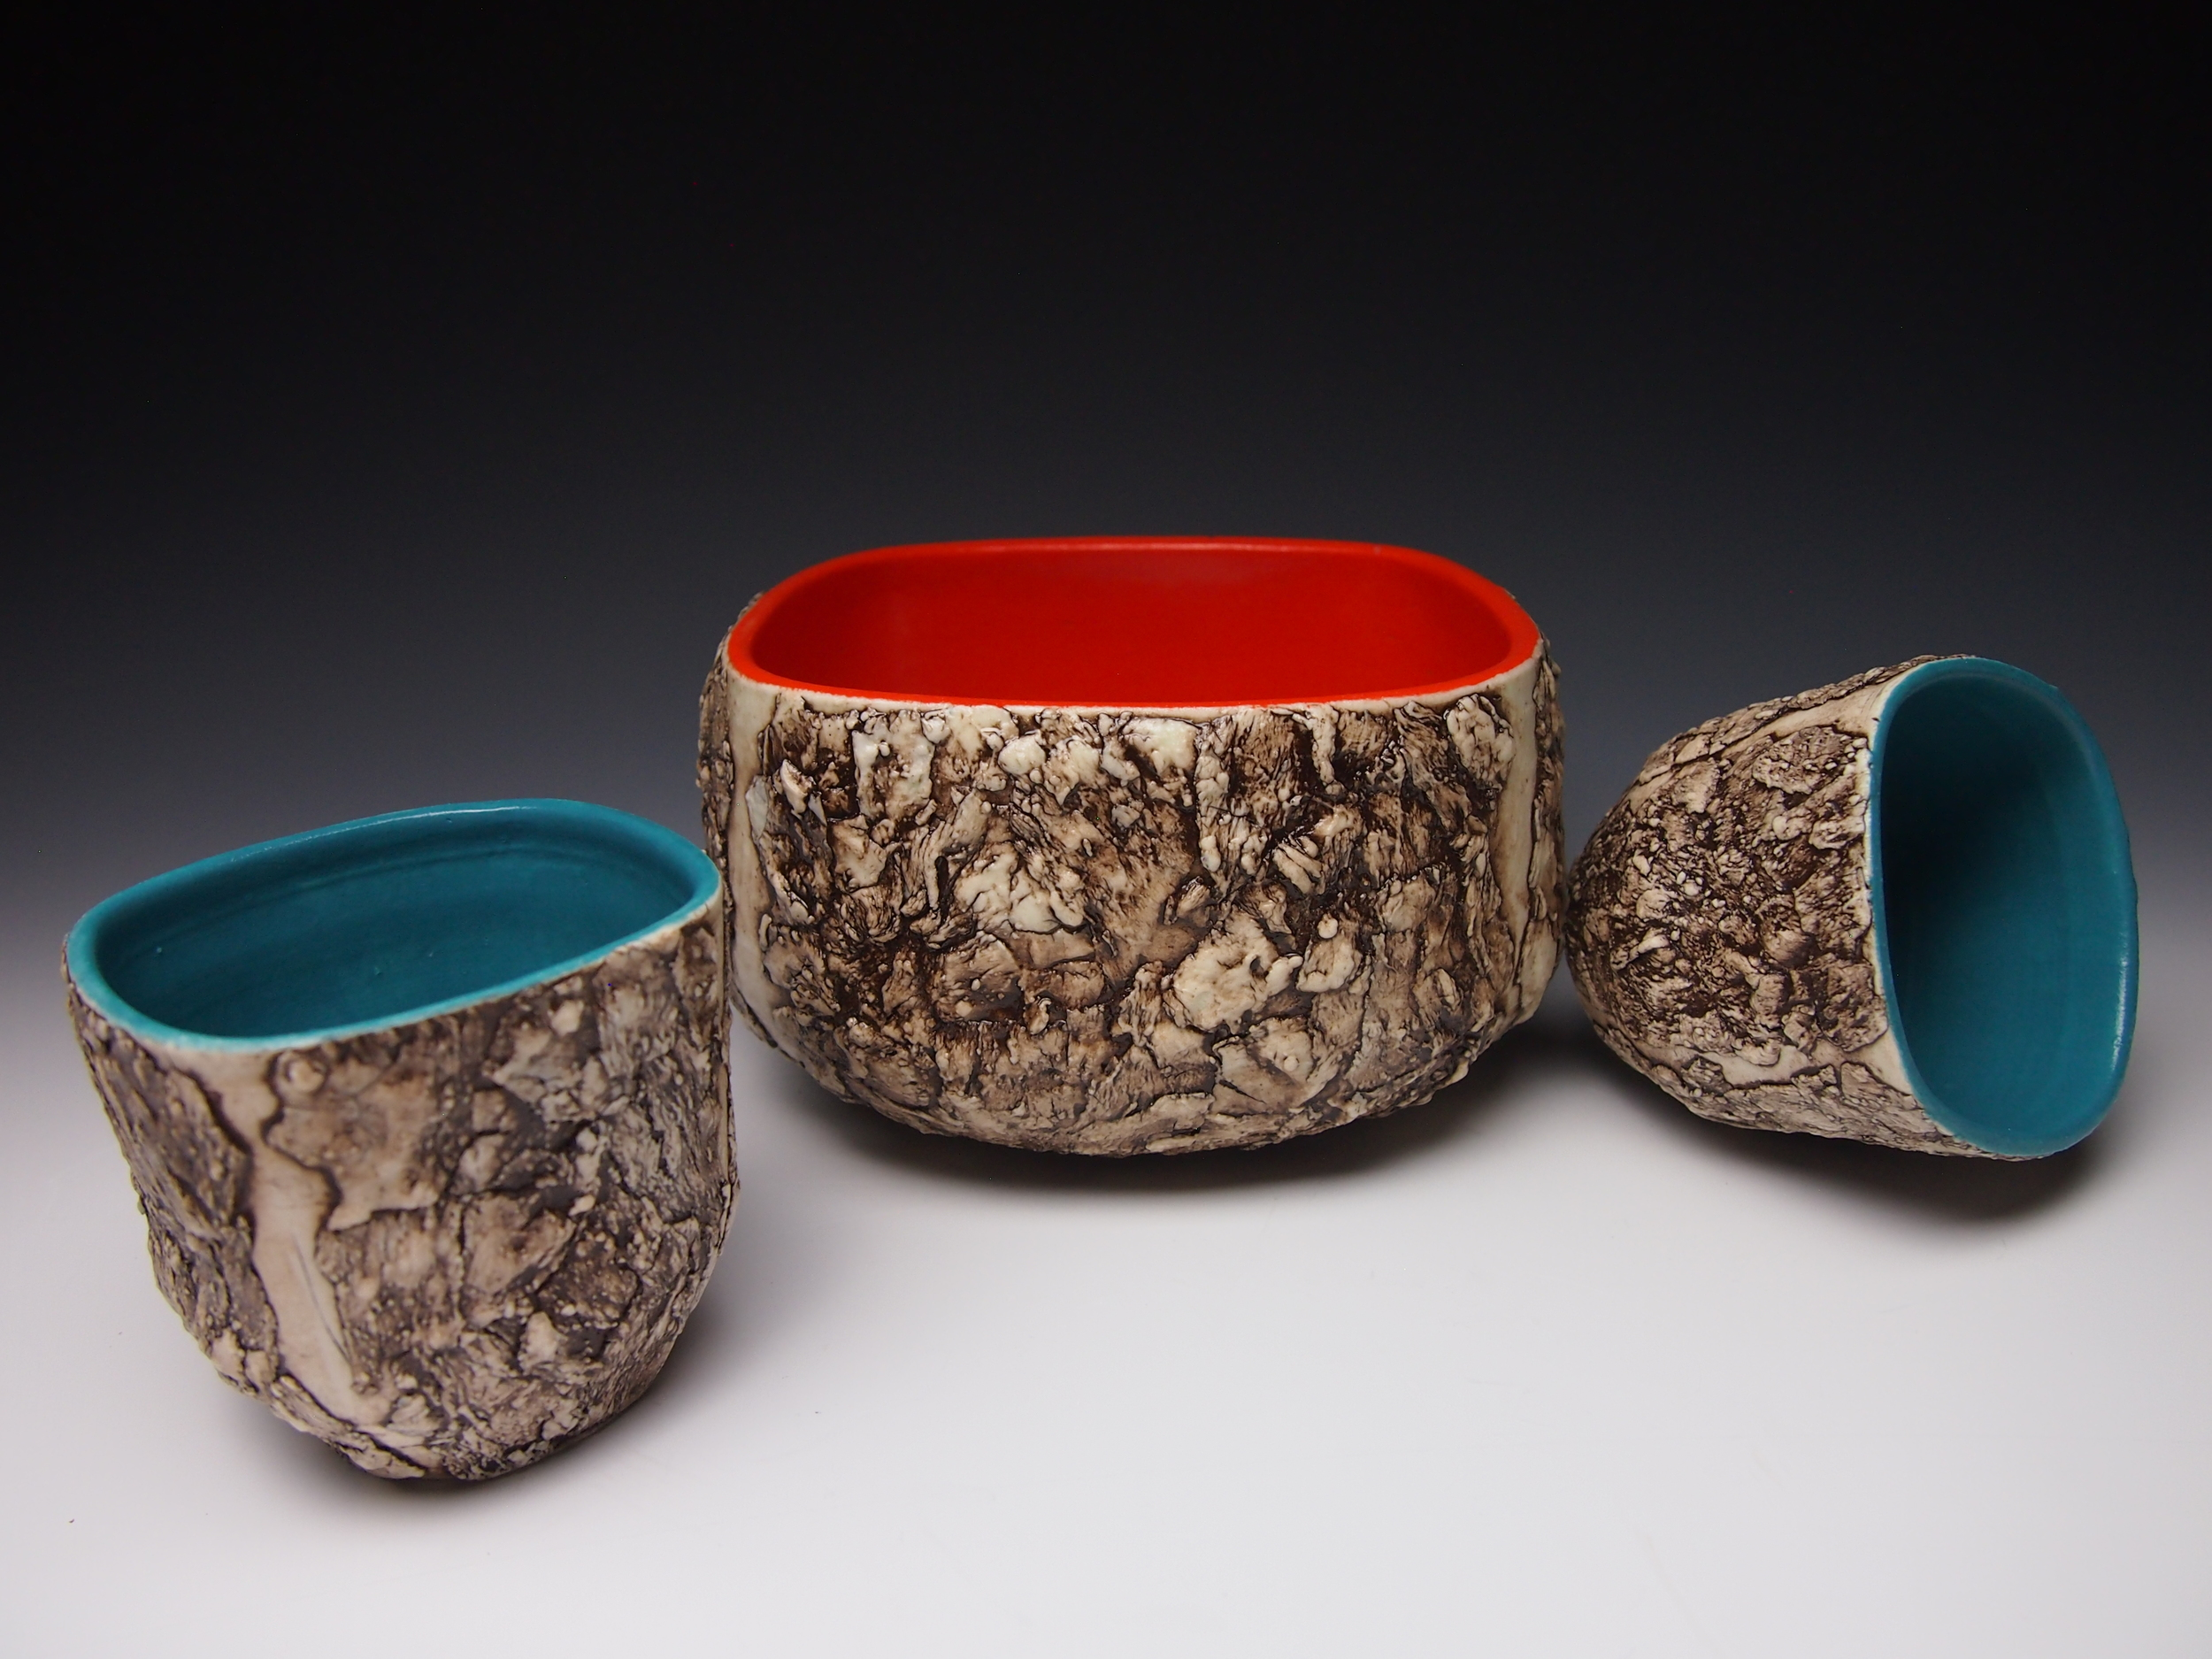 Orange Bark Bowl and Turquoise bark cups